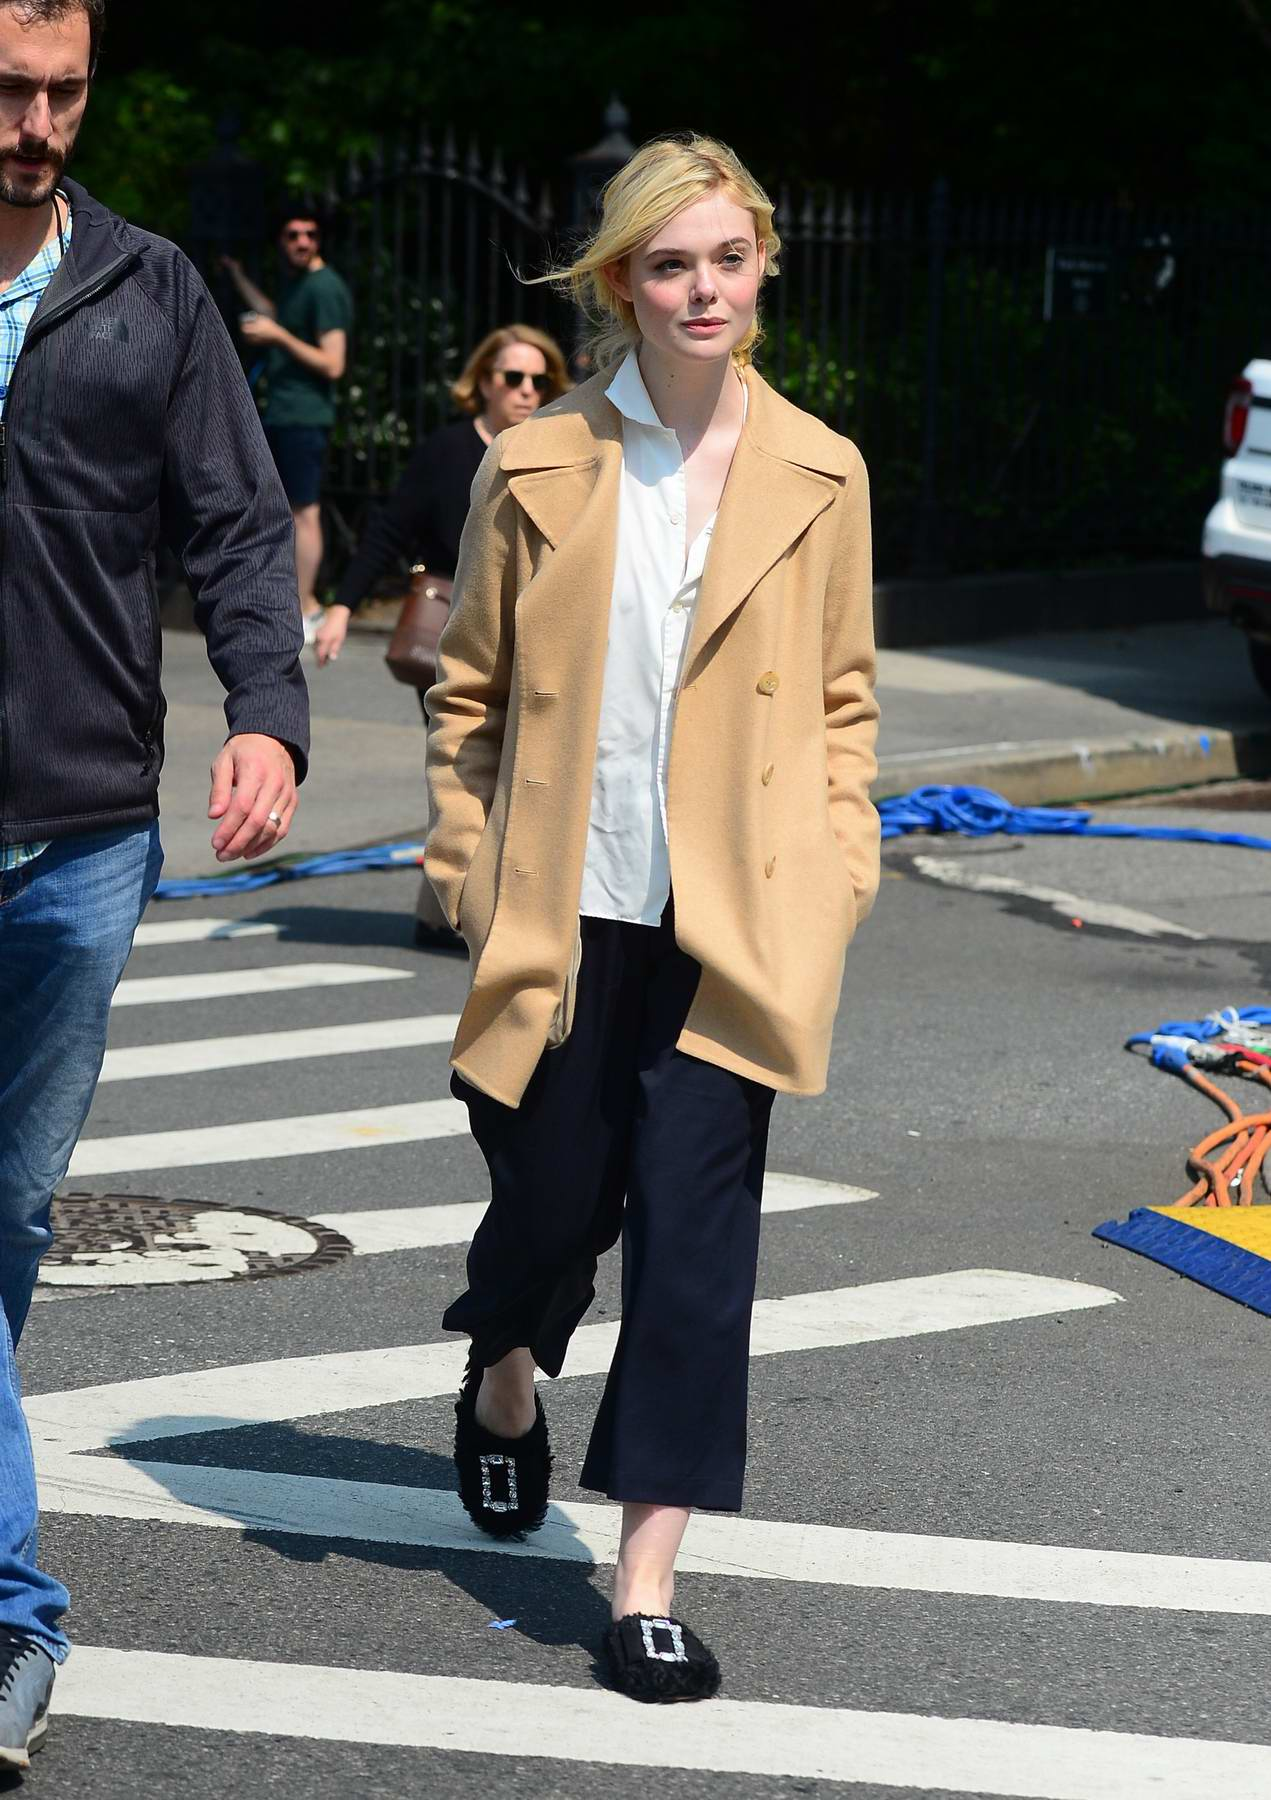 Elle Fanning spotted on the set of Untitled Woody Allen Project movie in New York City